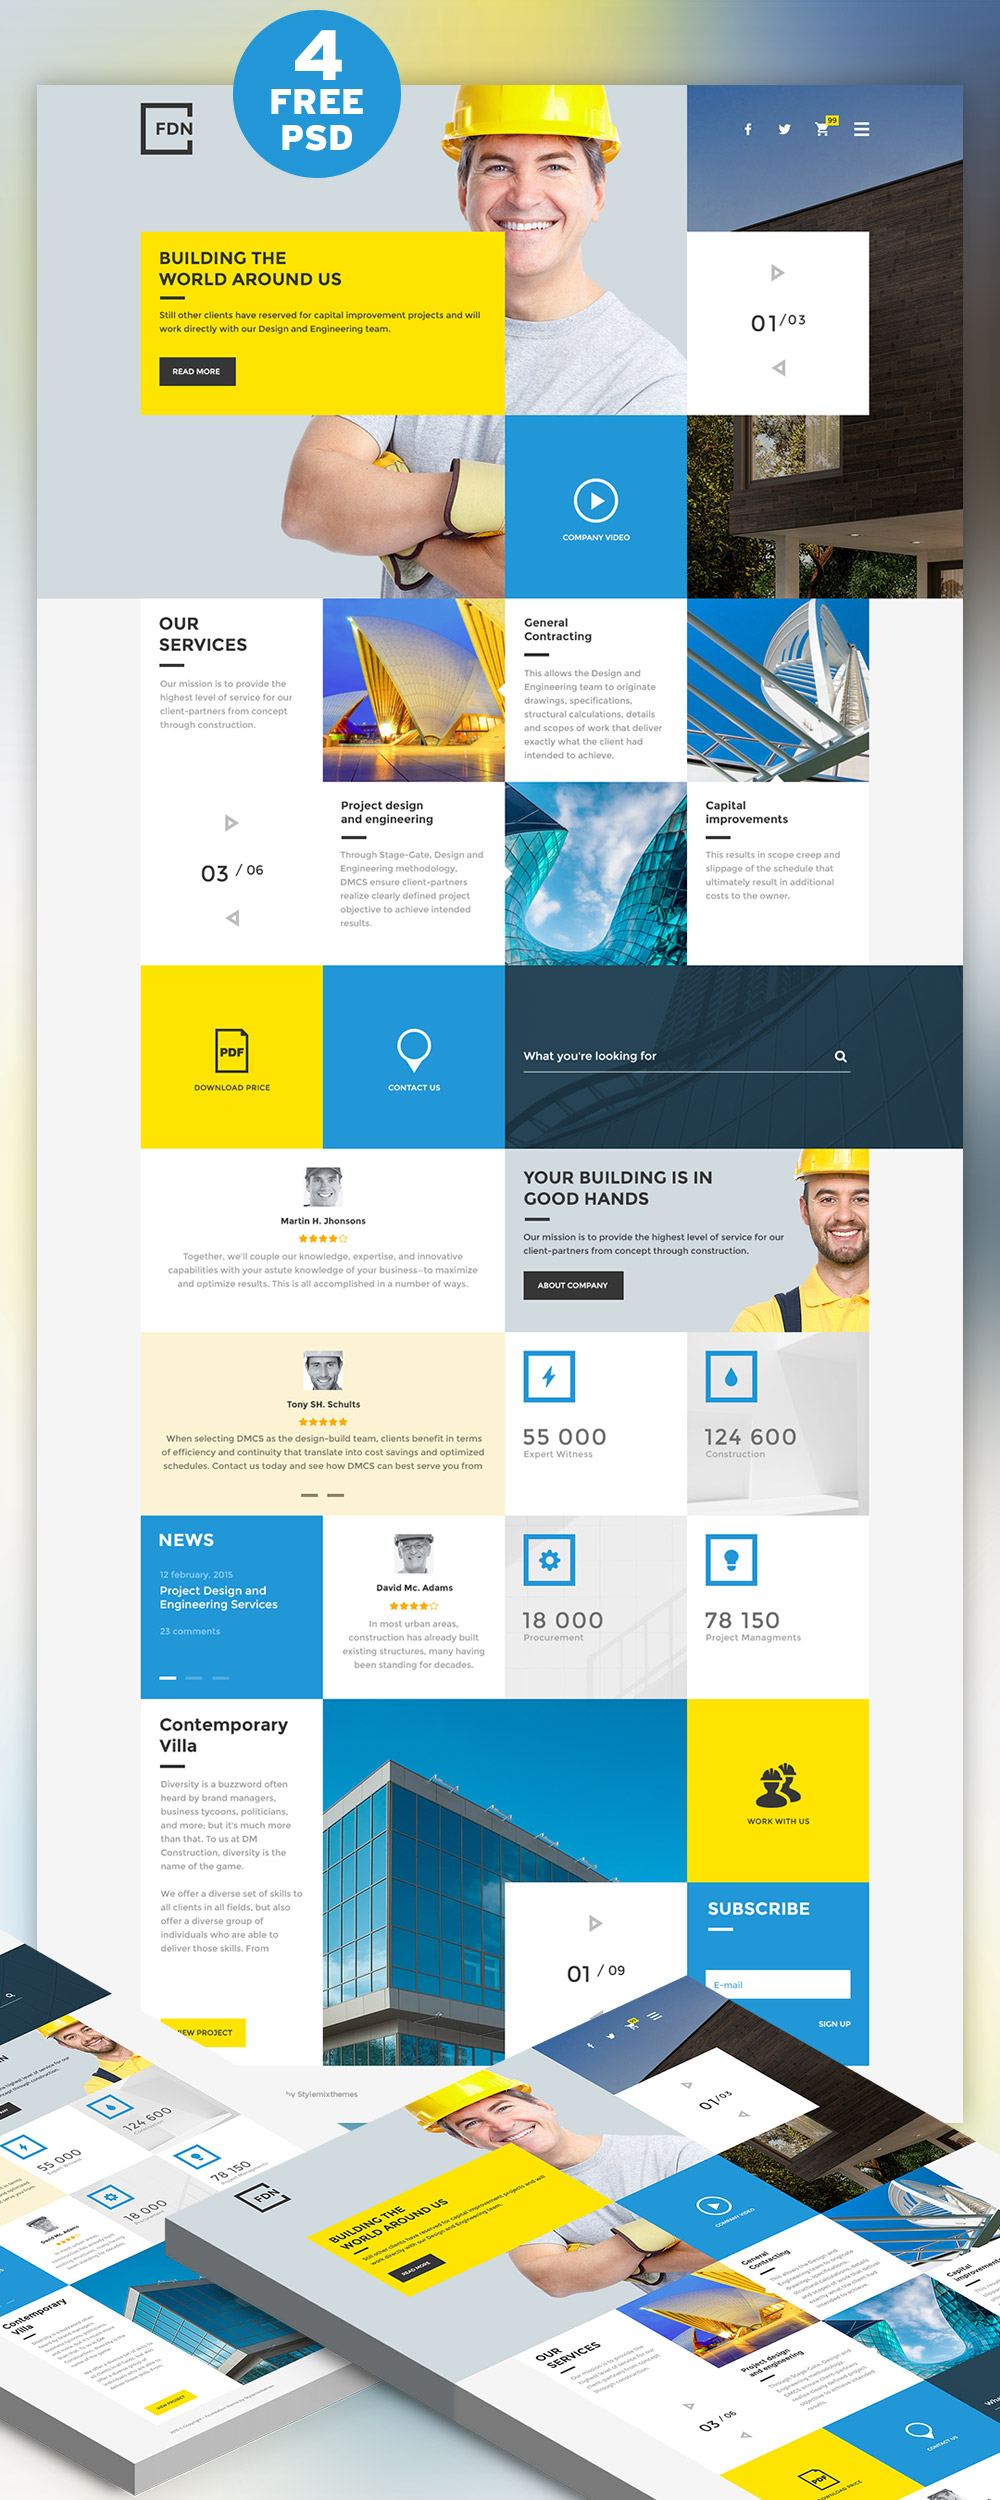 Construction Business Website Free PSD Template